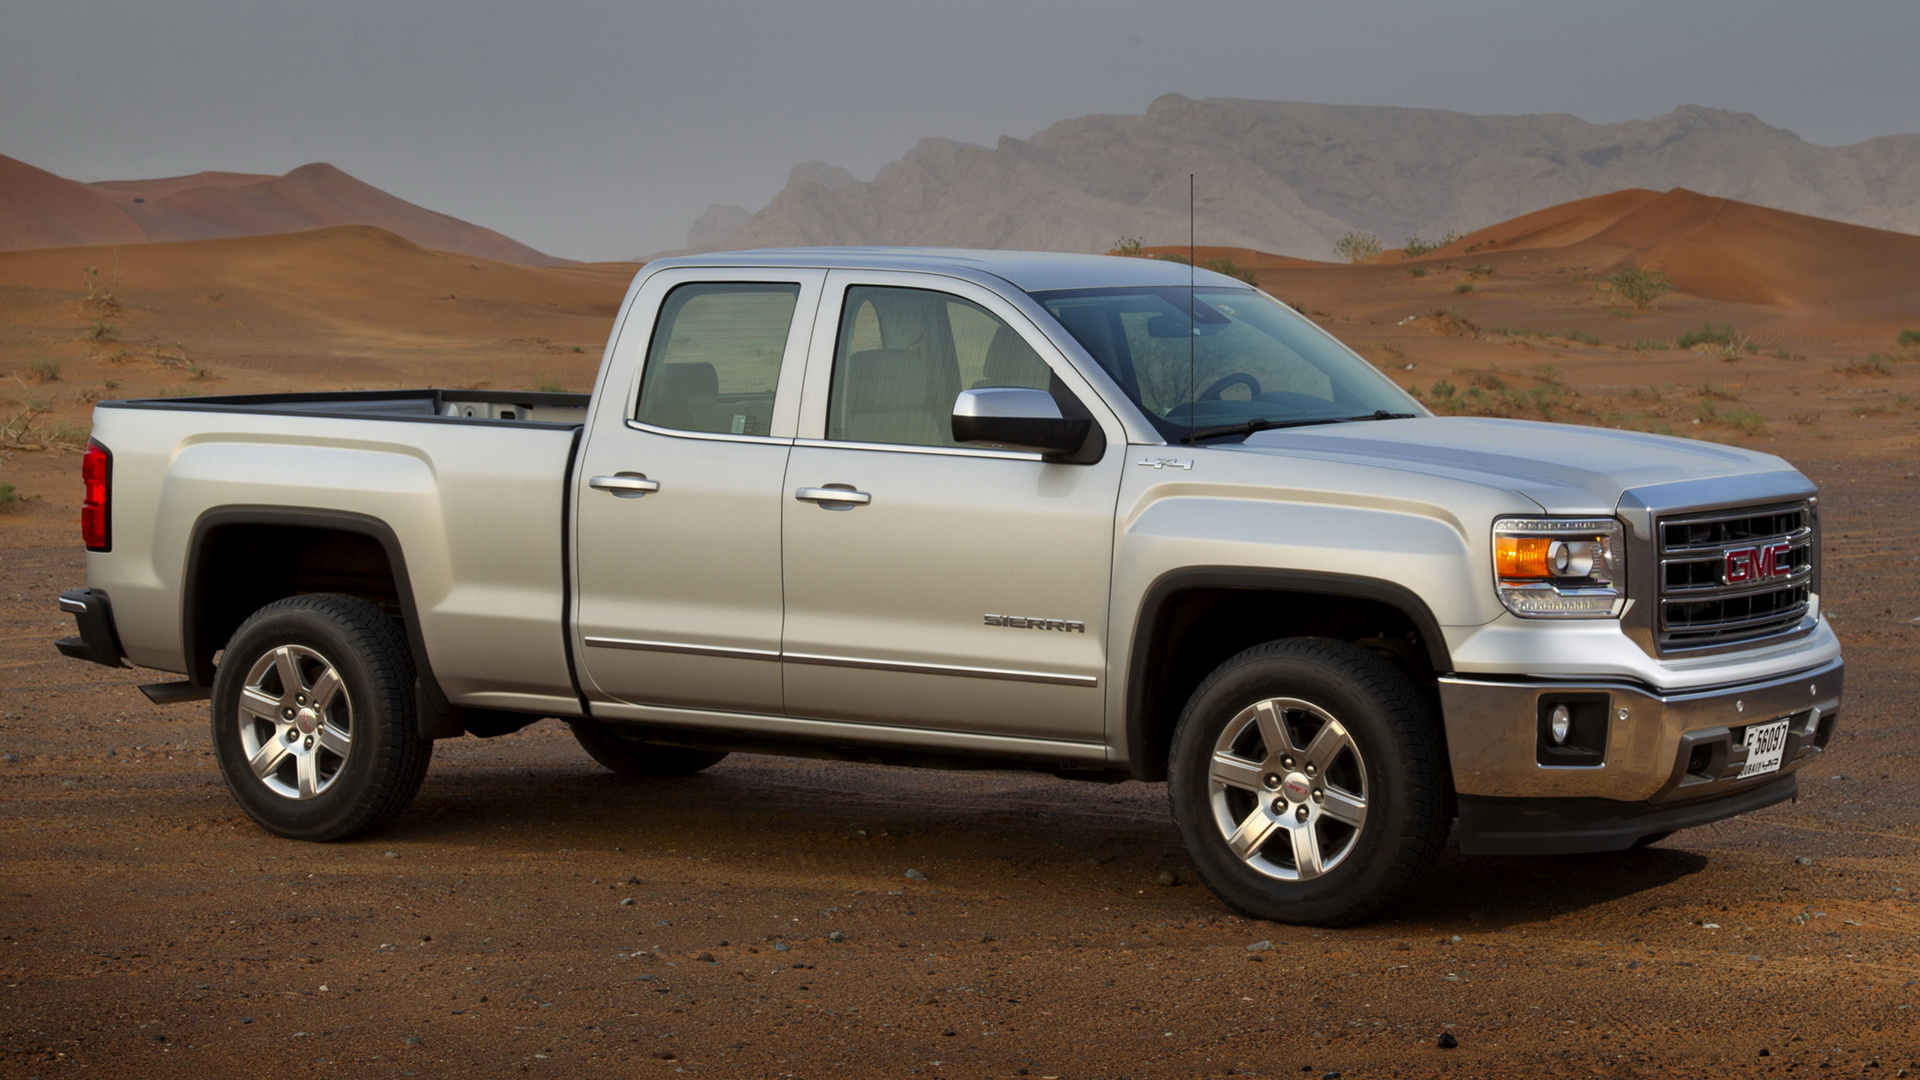 2014 GMC Sierra 1500 SLT Double Cab - Wallpapers and HD Images | Car Pixel